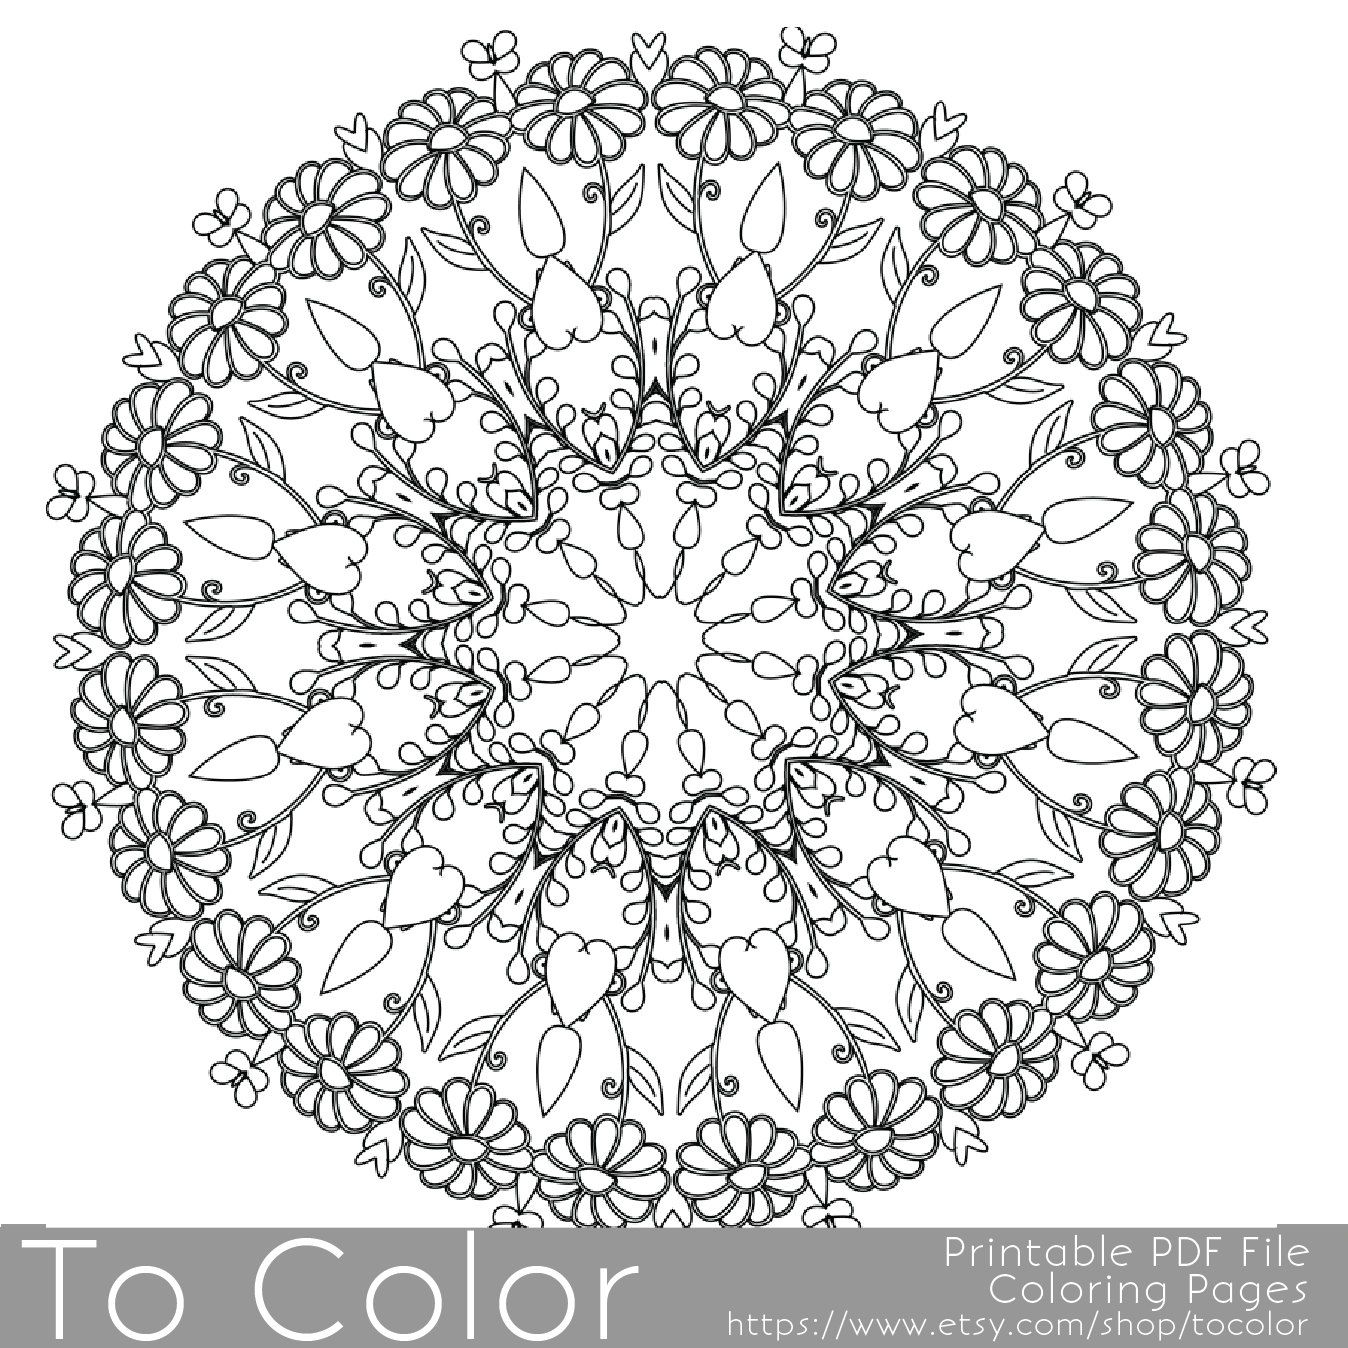 World Of Mandalas Coloring Book Pdf